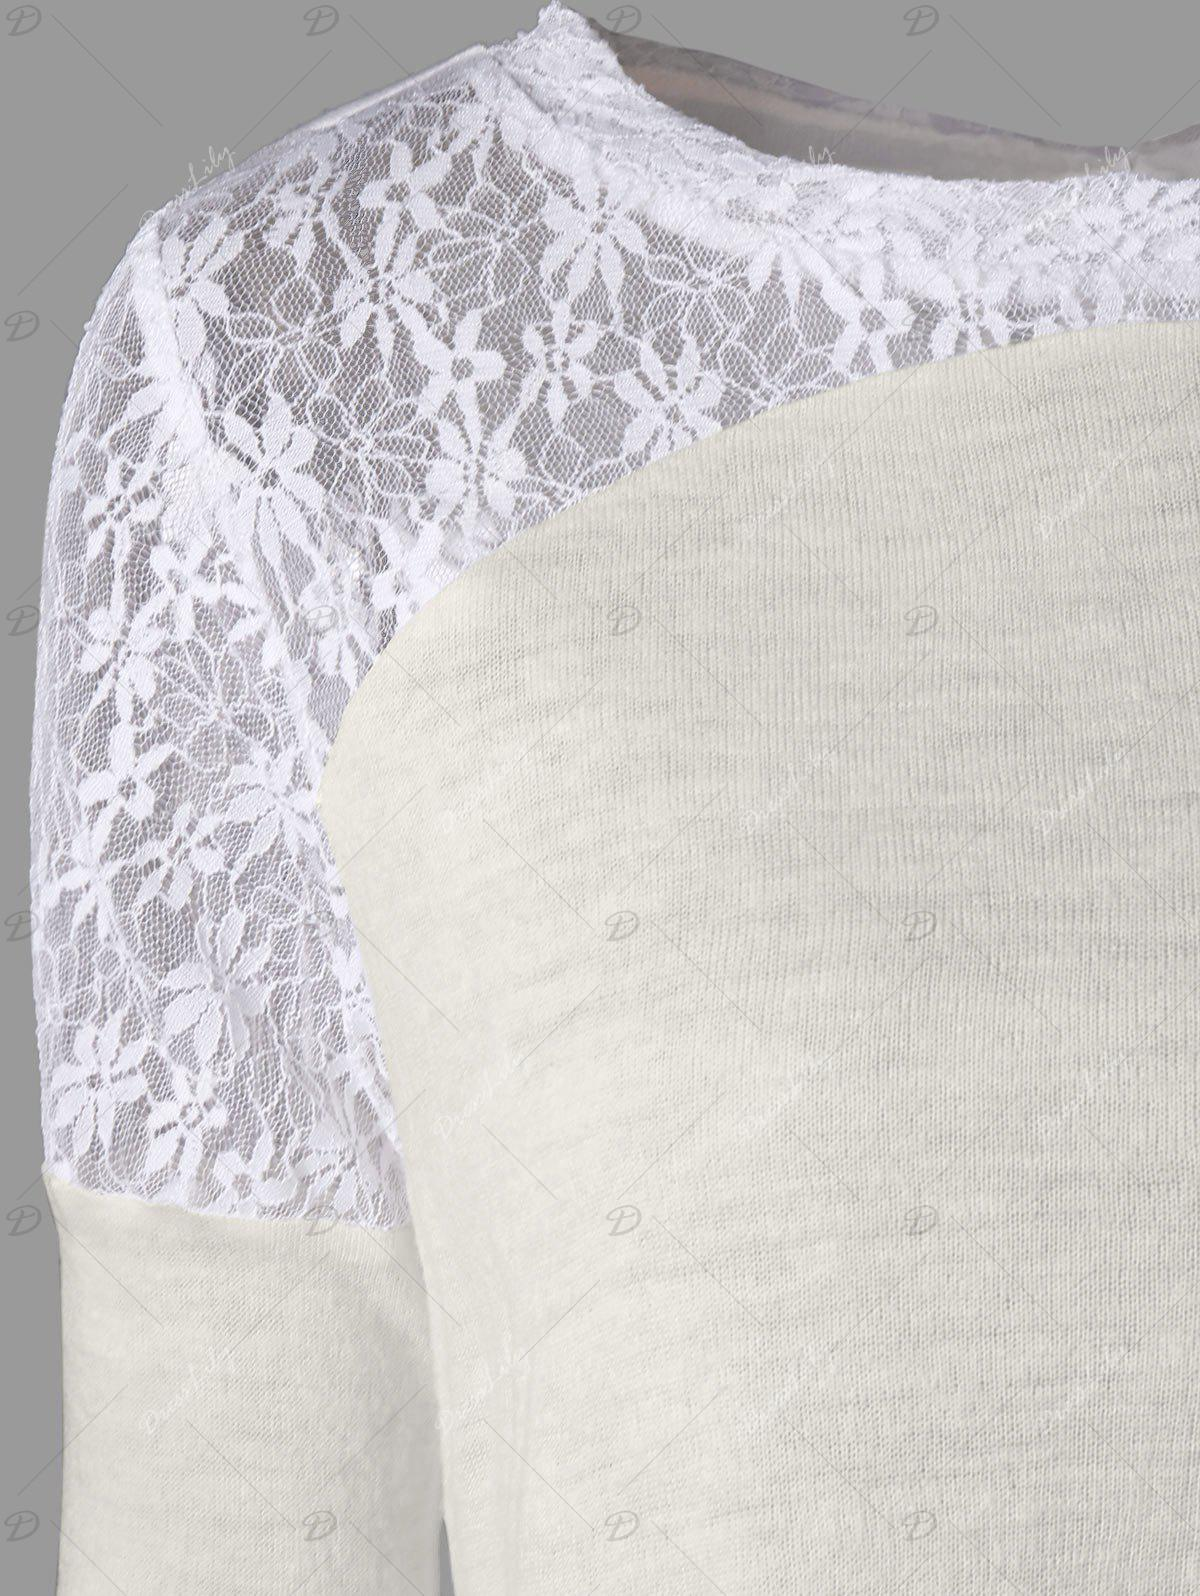 Long Sleeve Back Tie Up Lace Insert Top - OFF WHITE L